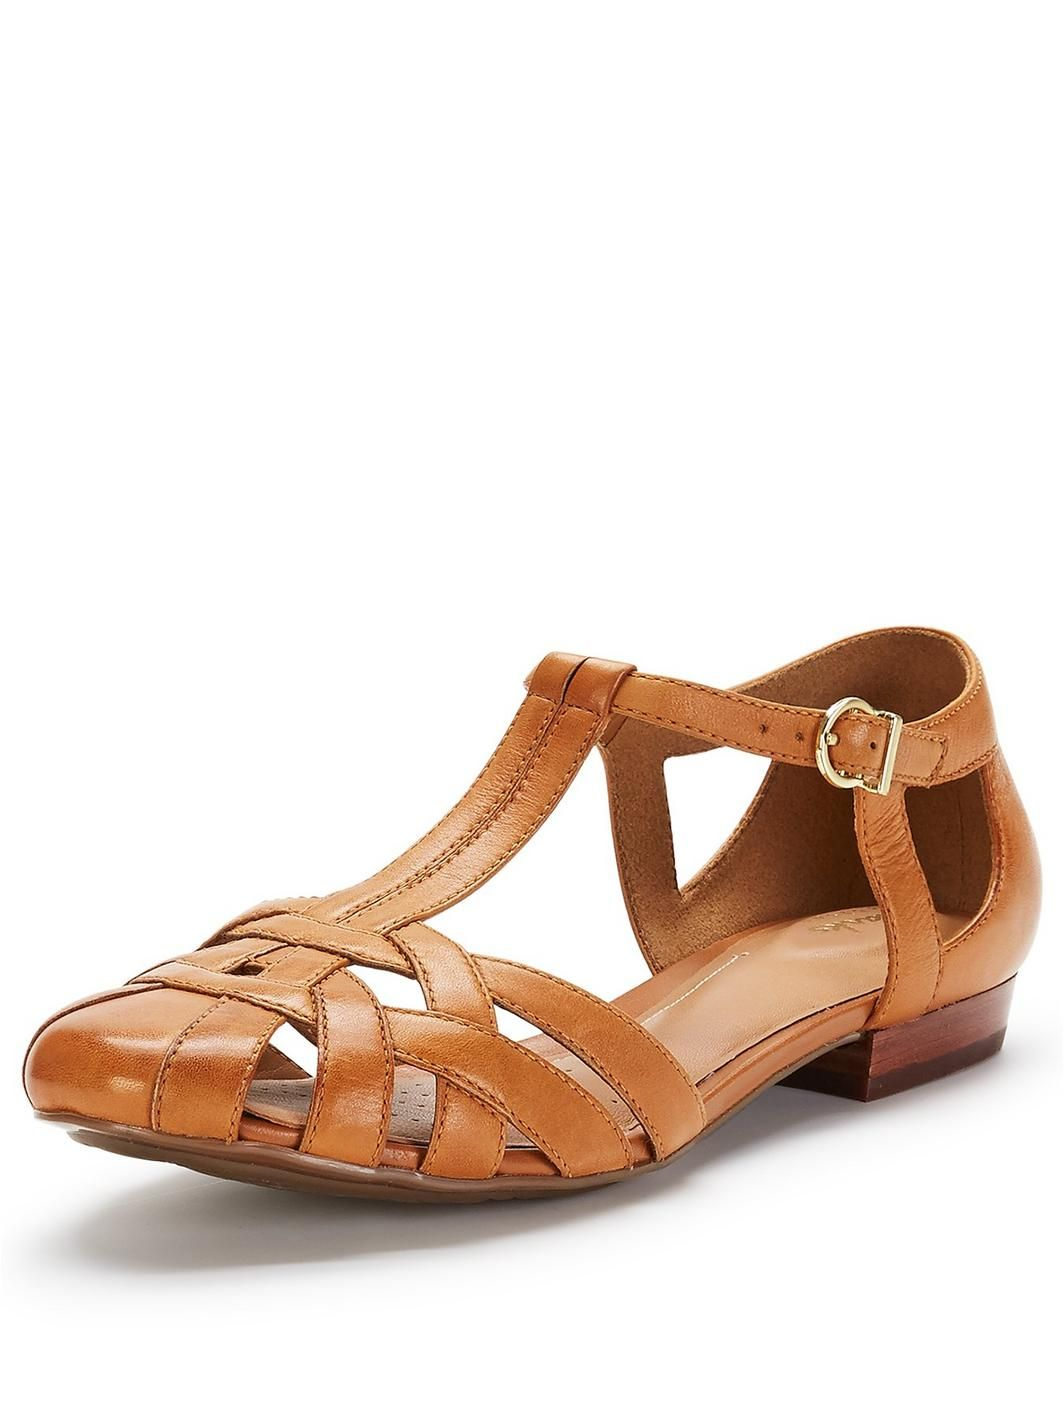 Clarks closed toe and heel sandals - great for orthotic wearers. €64.00